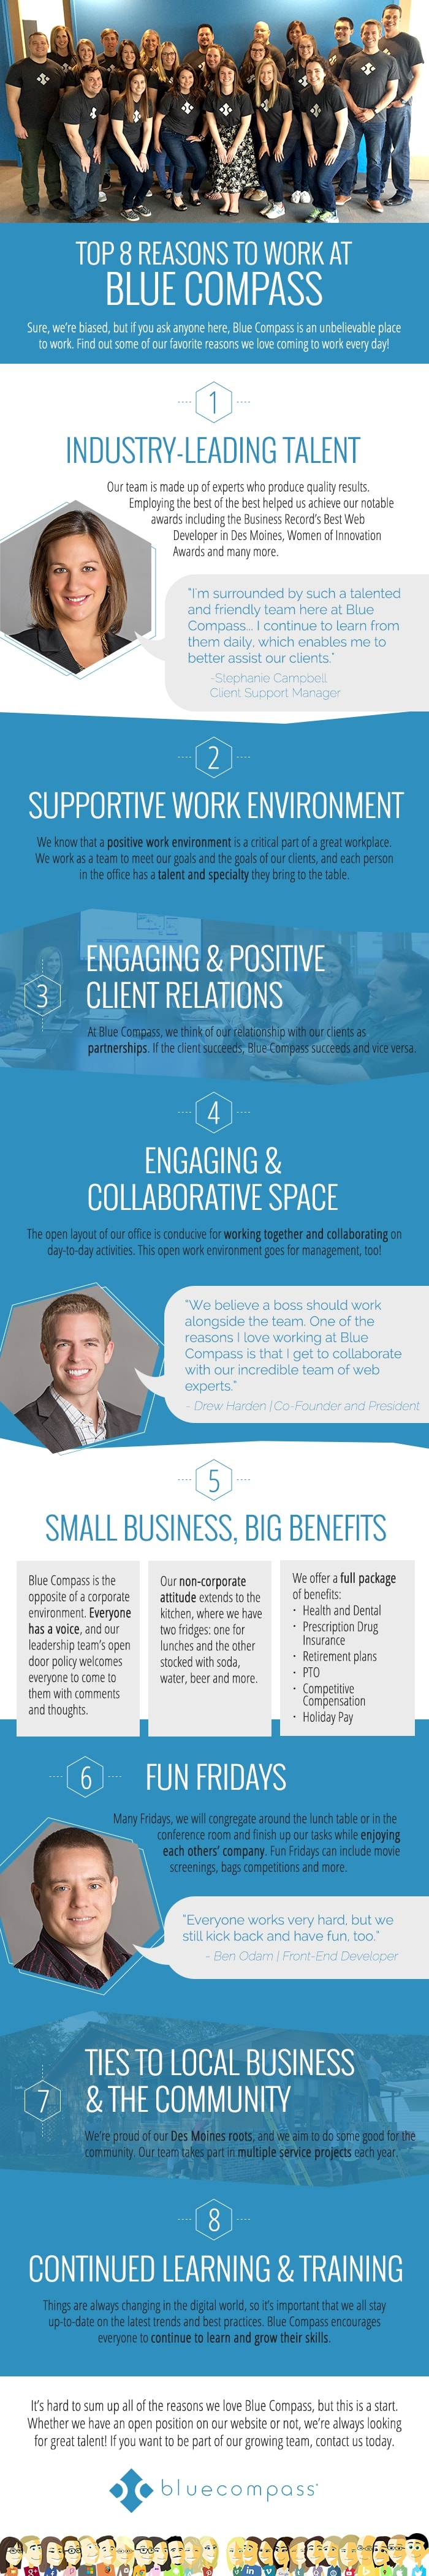 Reasons to Work at Blue Compass